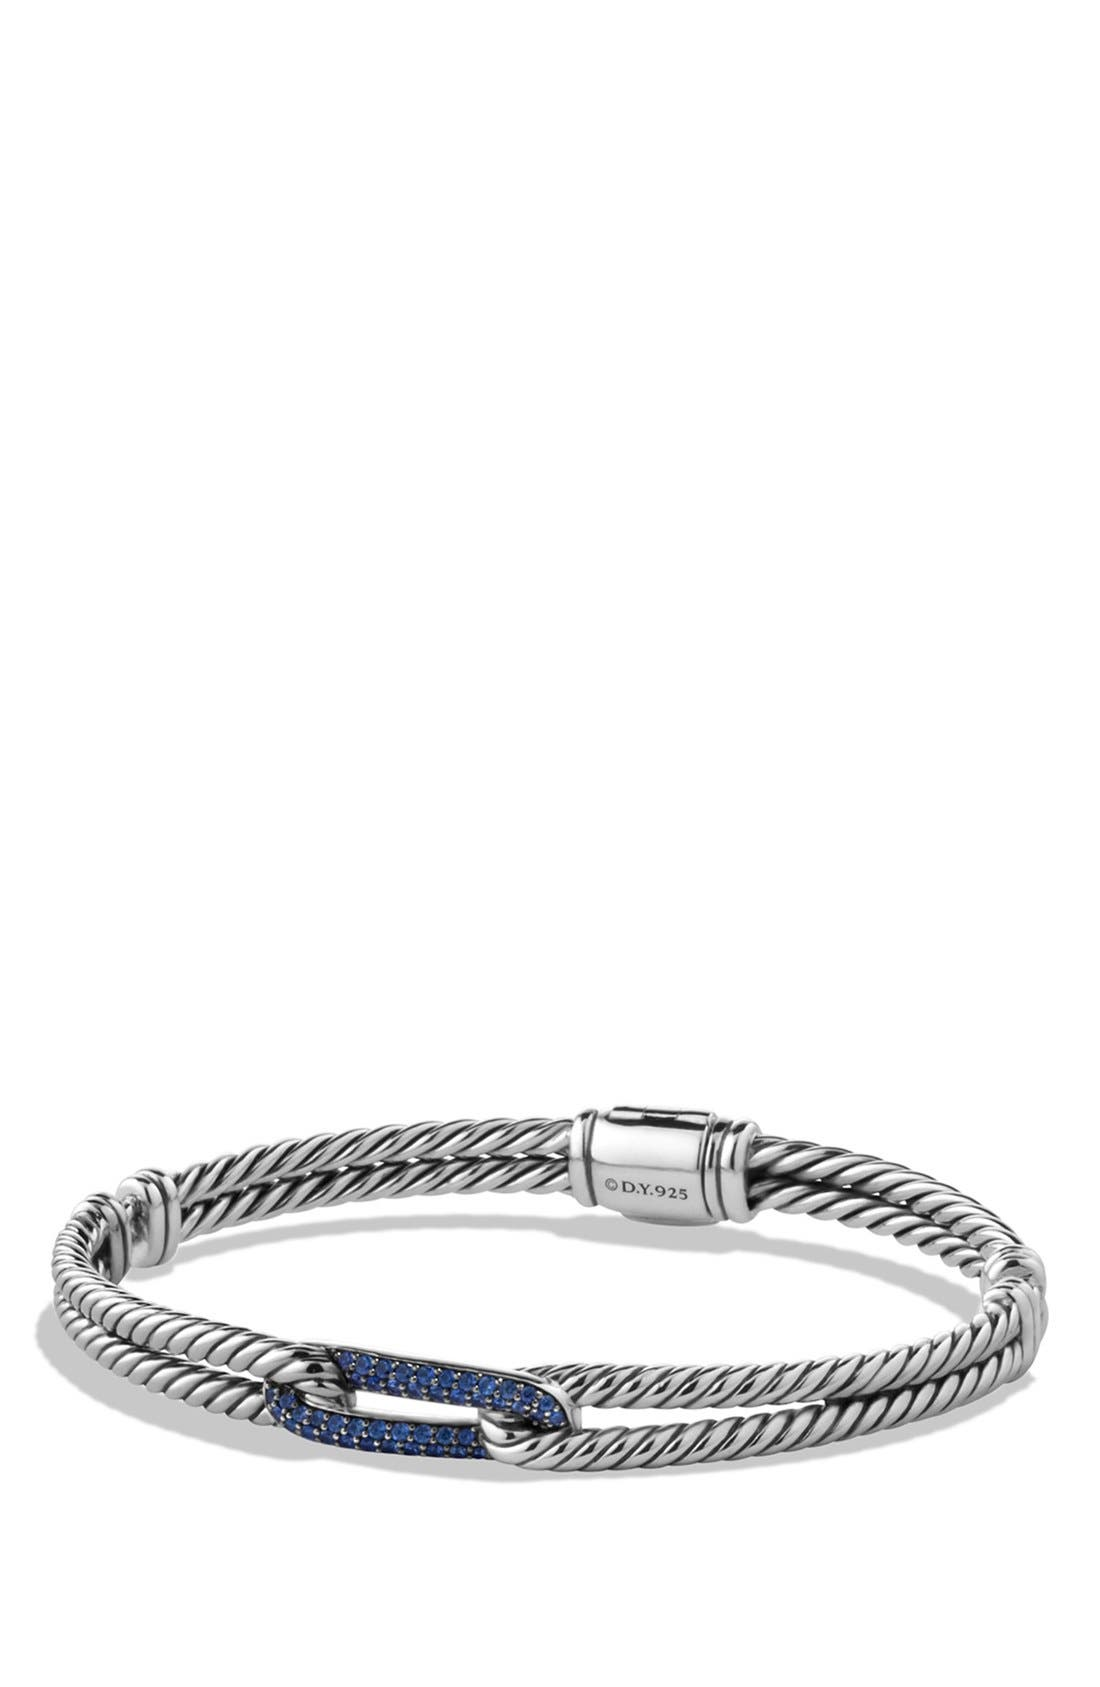 David Yurman 'Labyrinth' Petite Pavé Single-Loop Bracelet with Sapphires